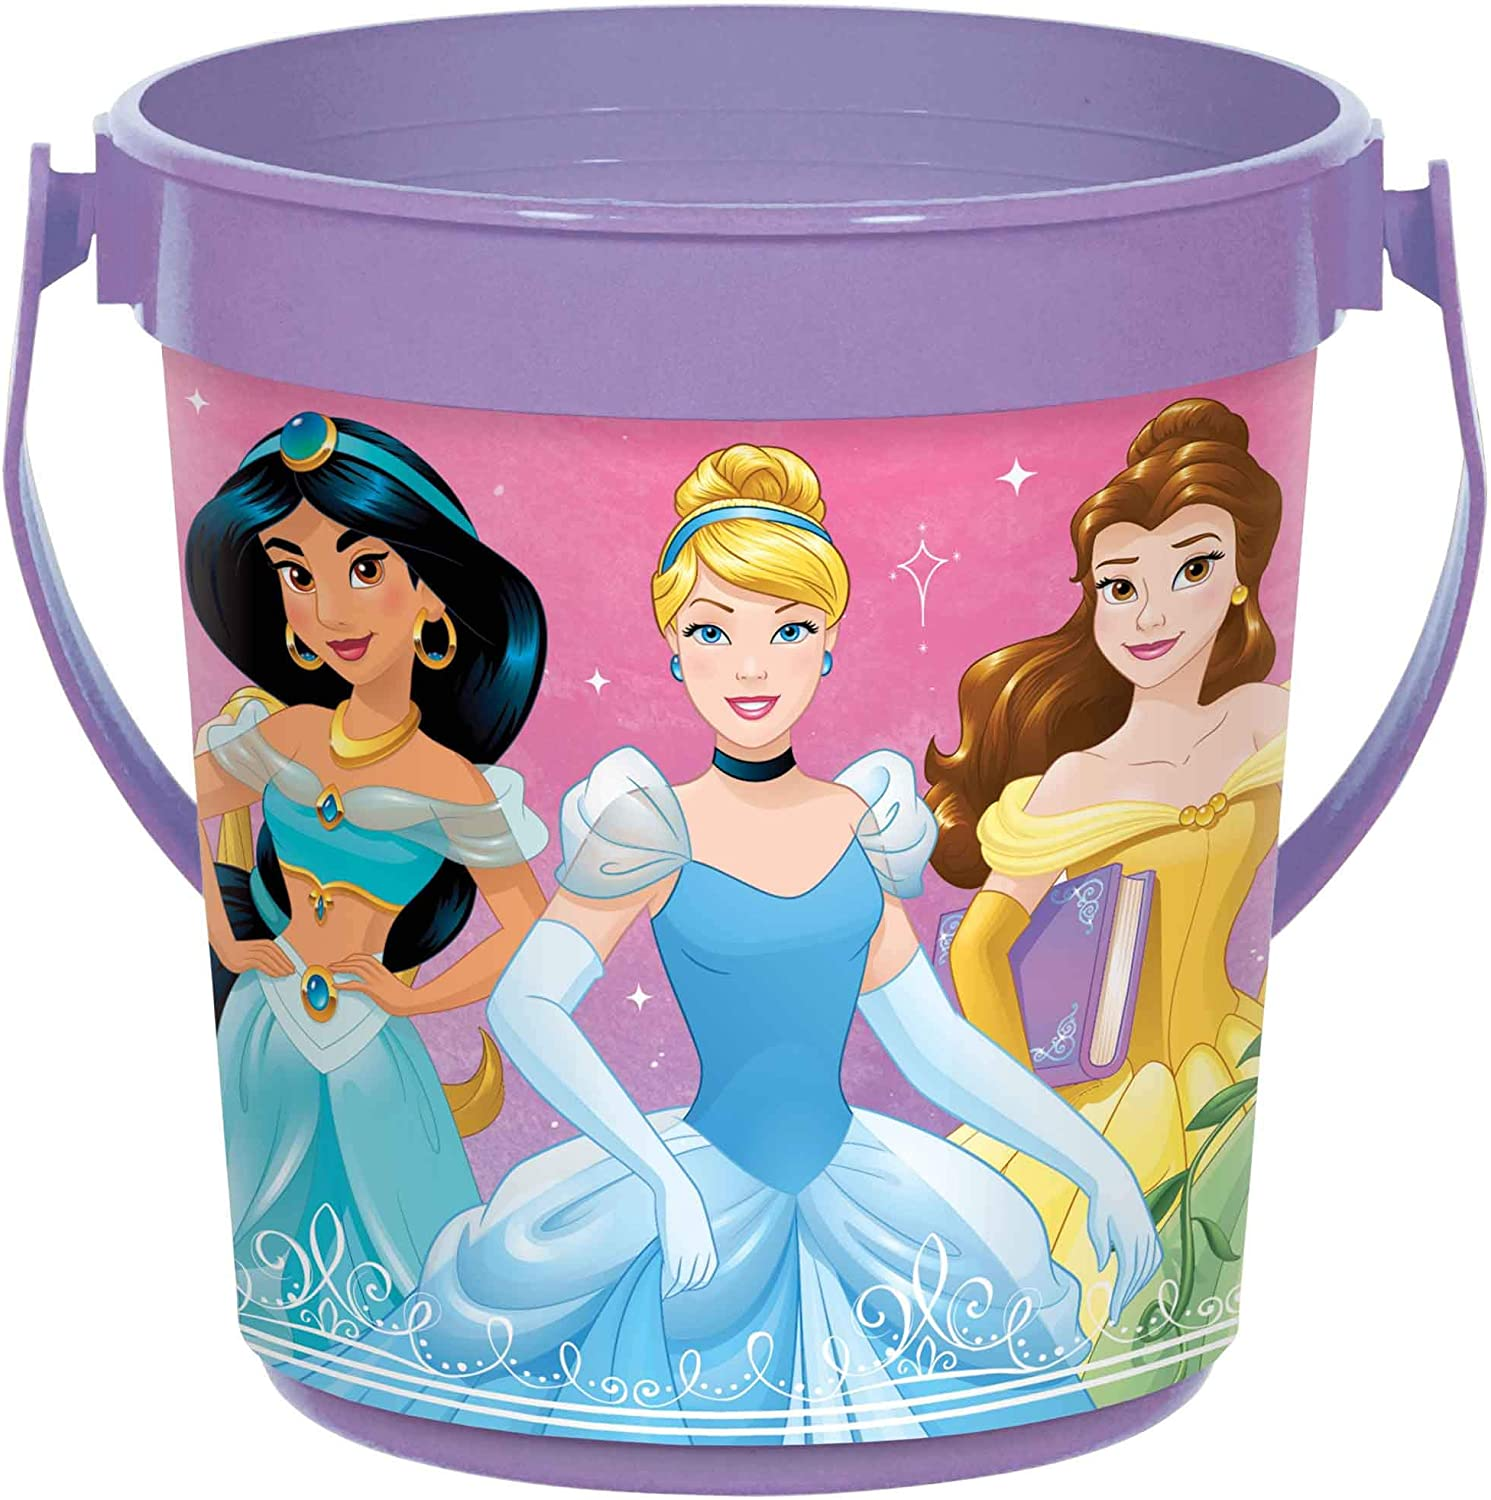 Disney Princess Blue and Pink Party Favor Container 4 7//8 H x 4 3//8 D